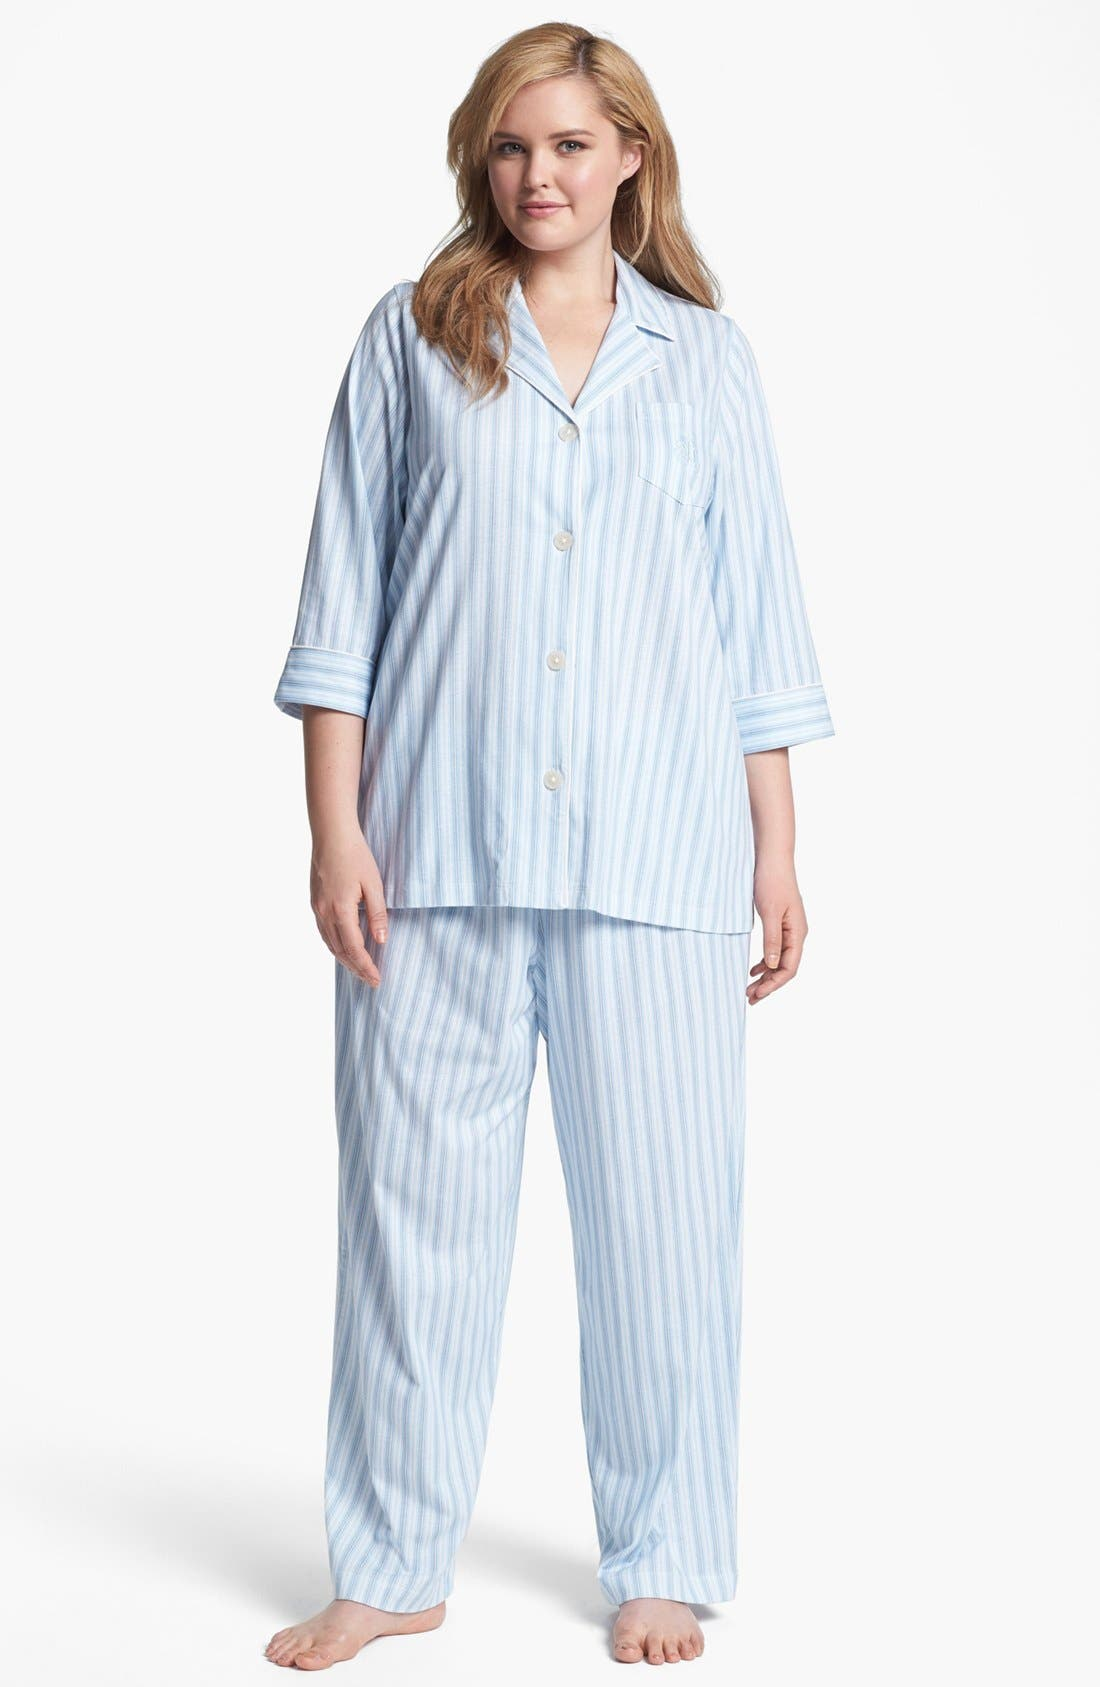 Main Image - Lauren Ralph Lauren Stripe Knit Pajamas (Plus Size)